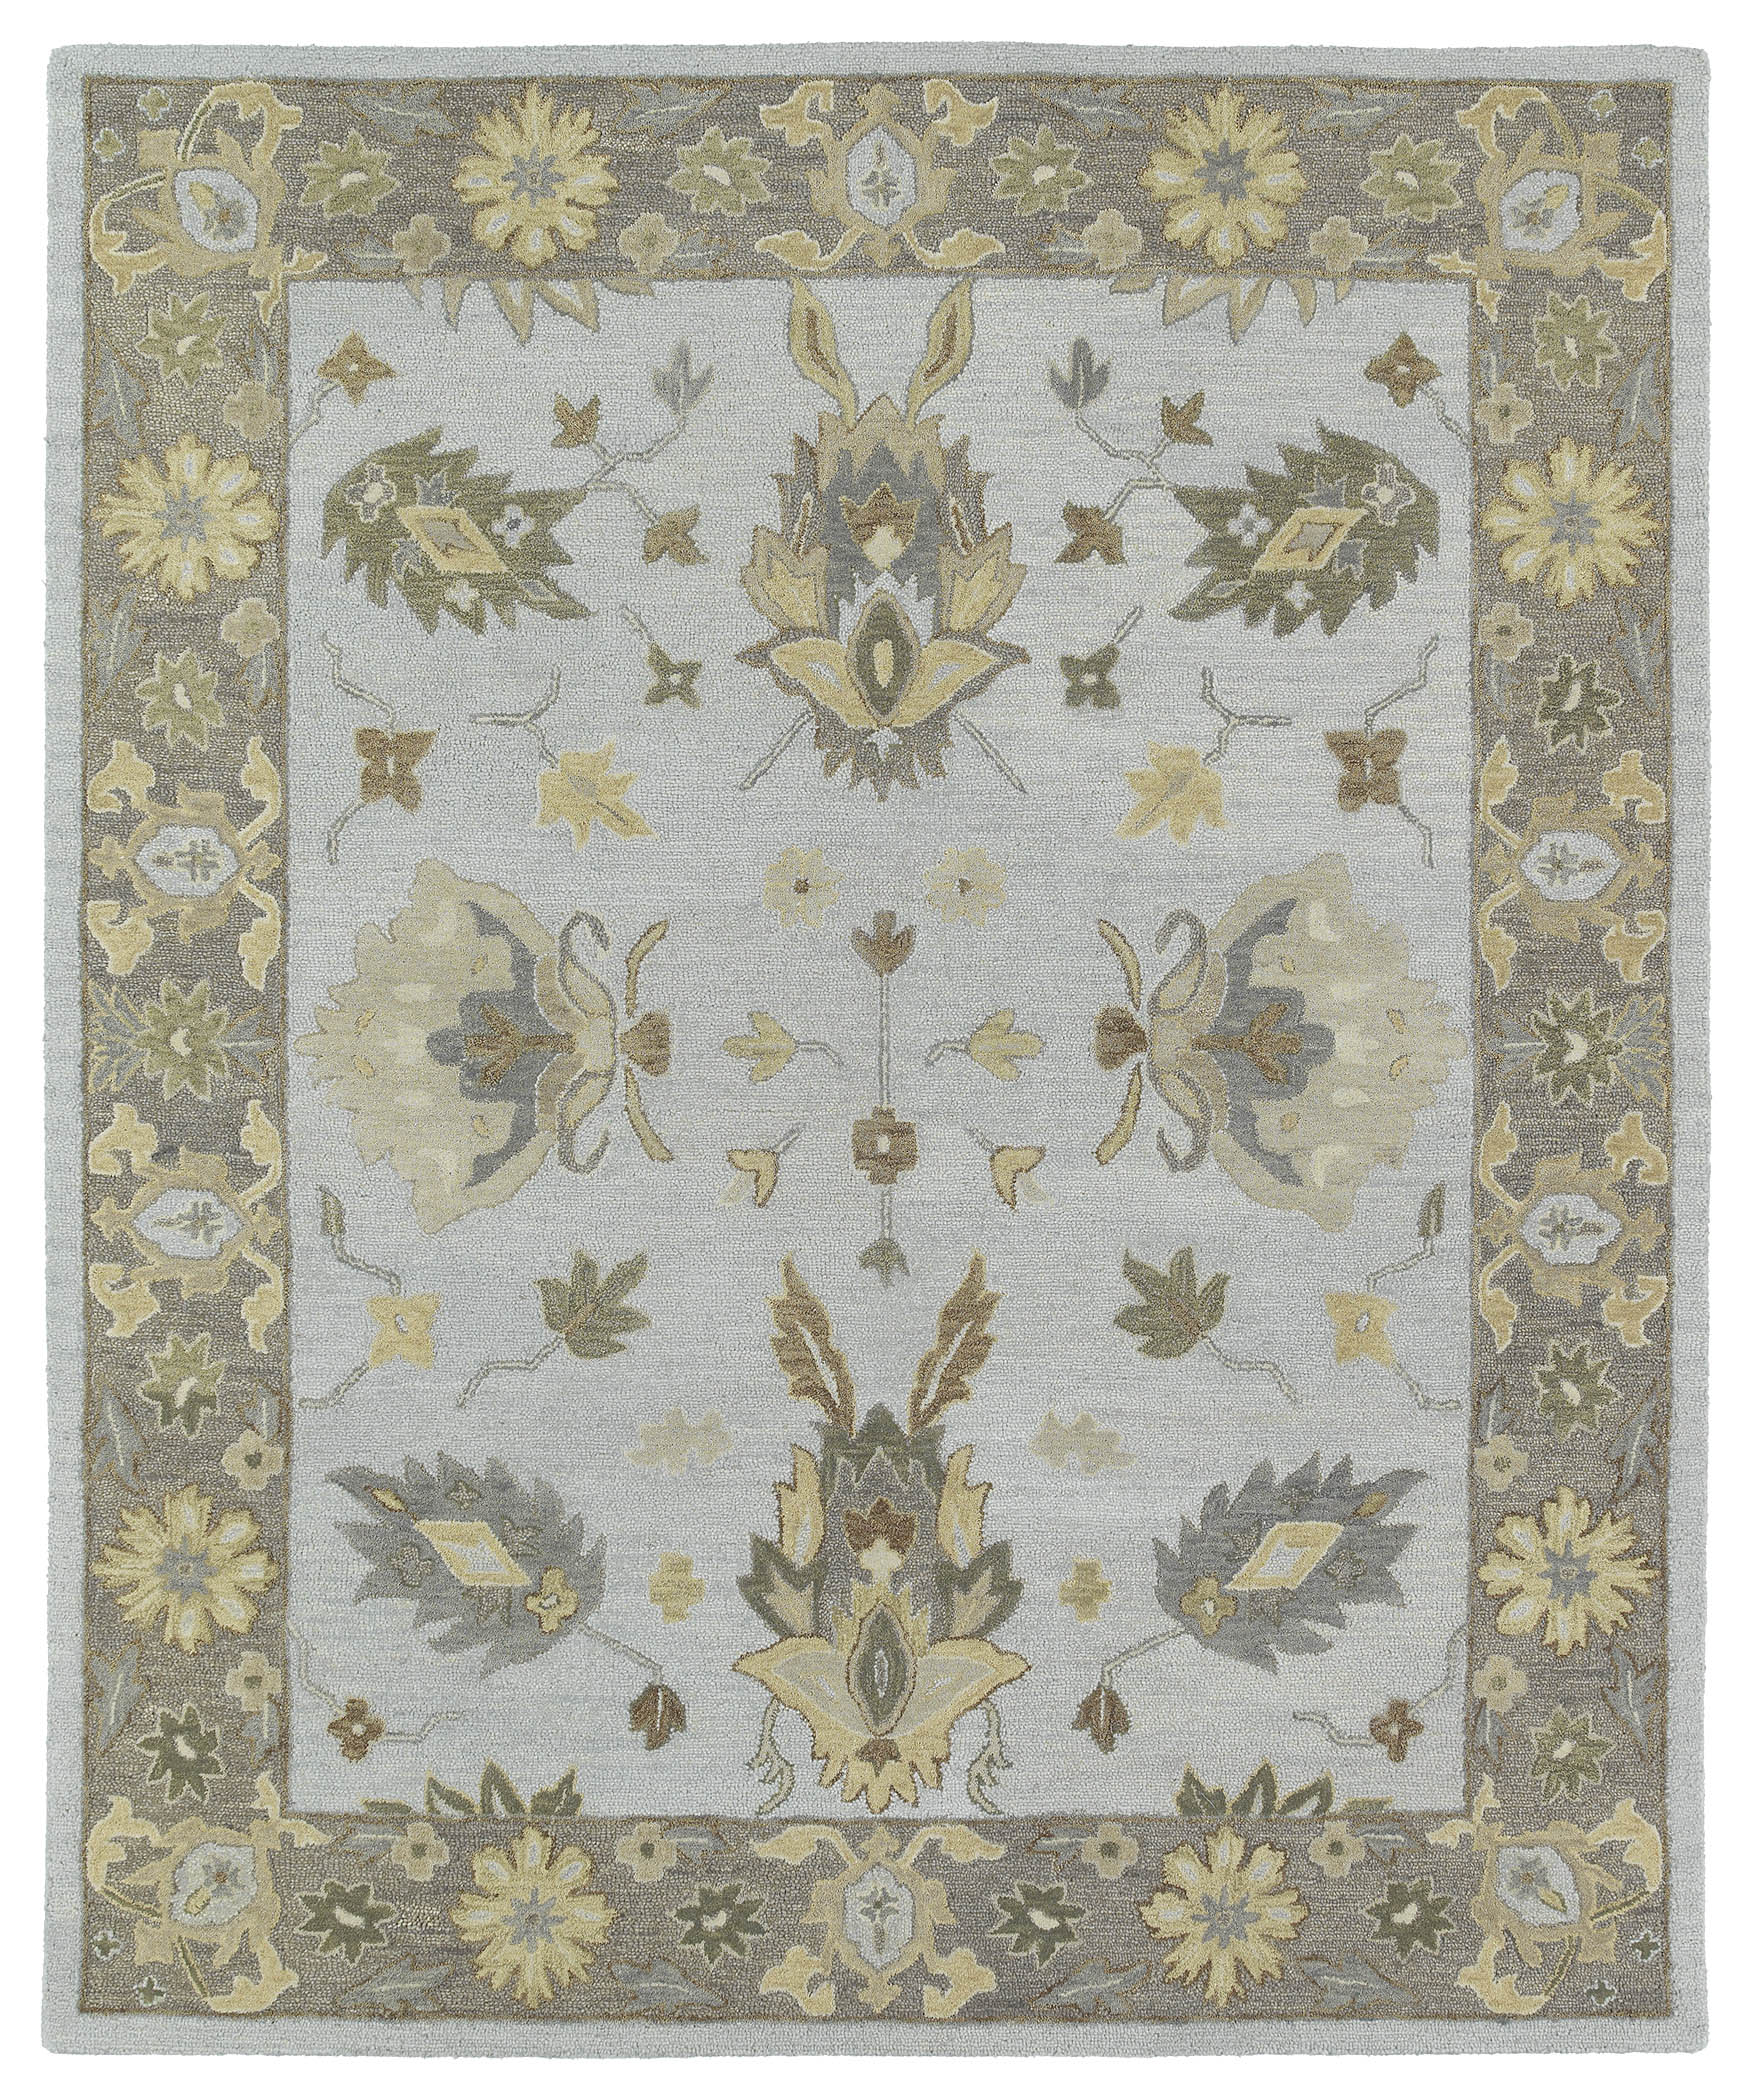 Kaleen Brooklyn Delaney 5303 77 Silver Rug